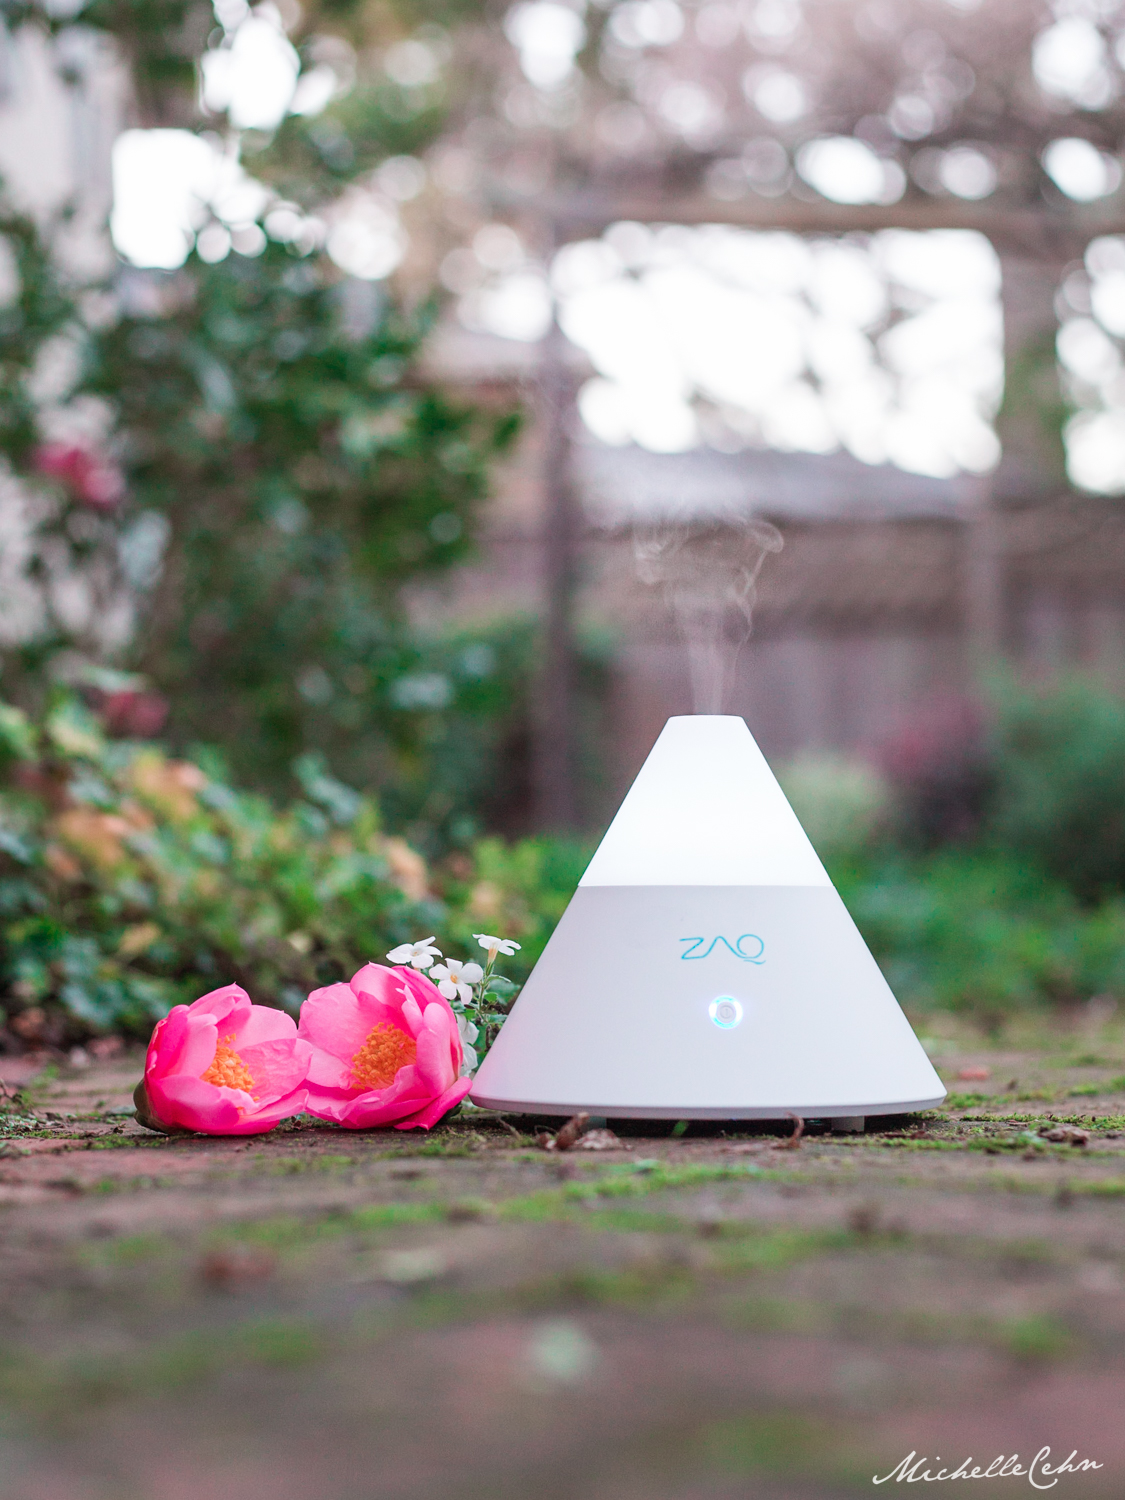 zaq essential oil diffuser-3